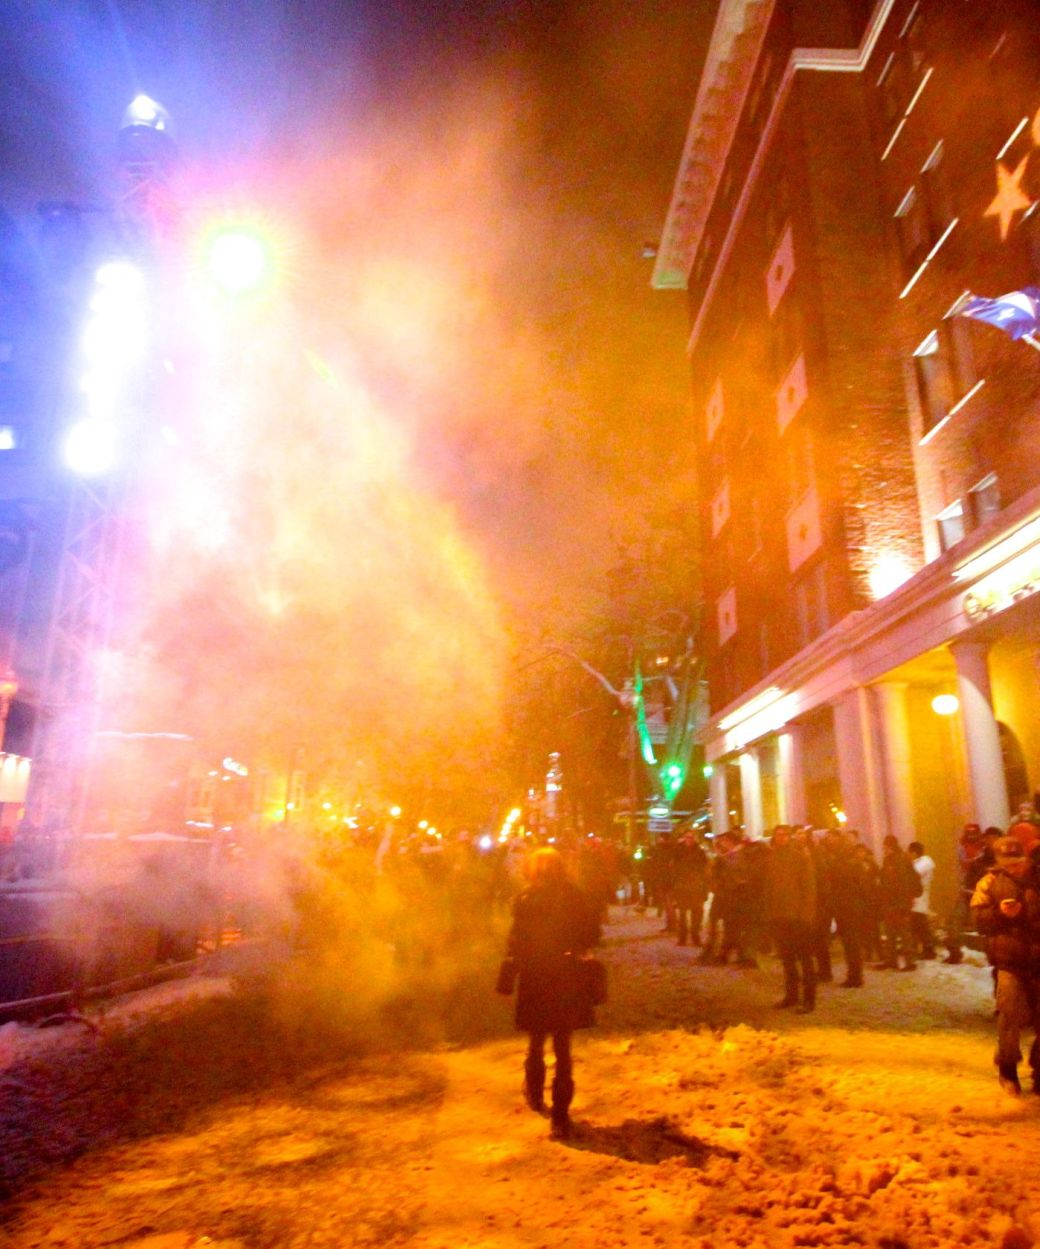 quebec city new years celebration december 31 2015 people after the fireworks